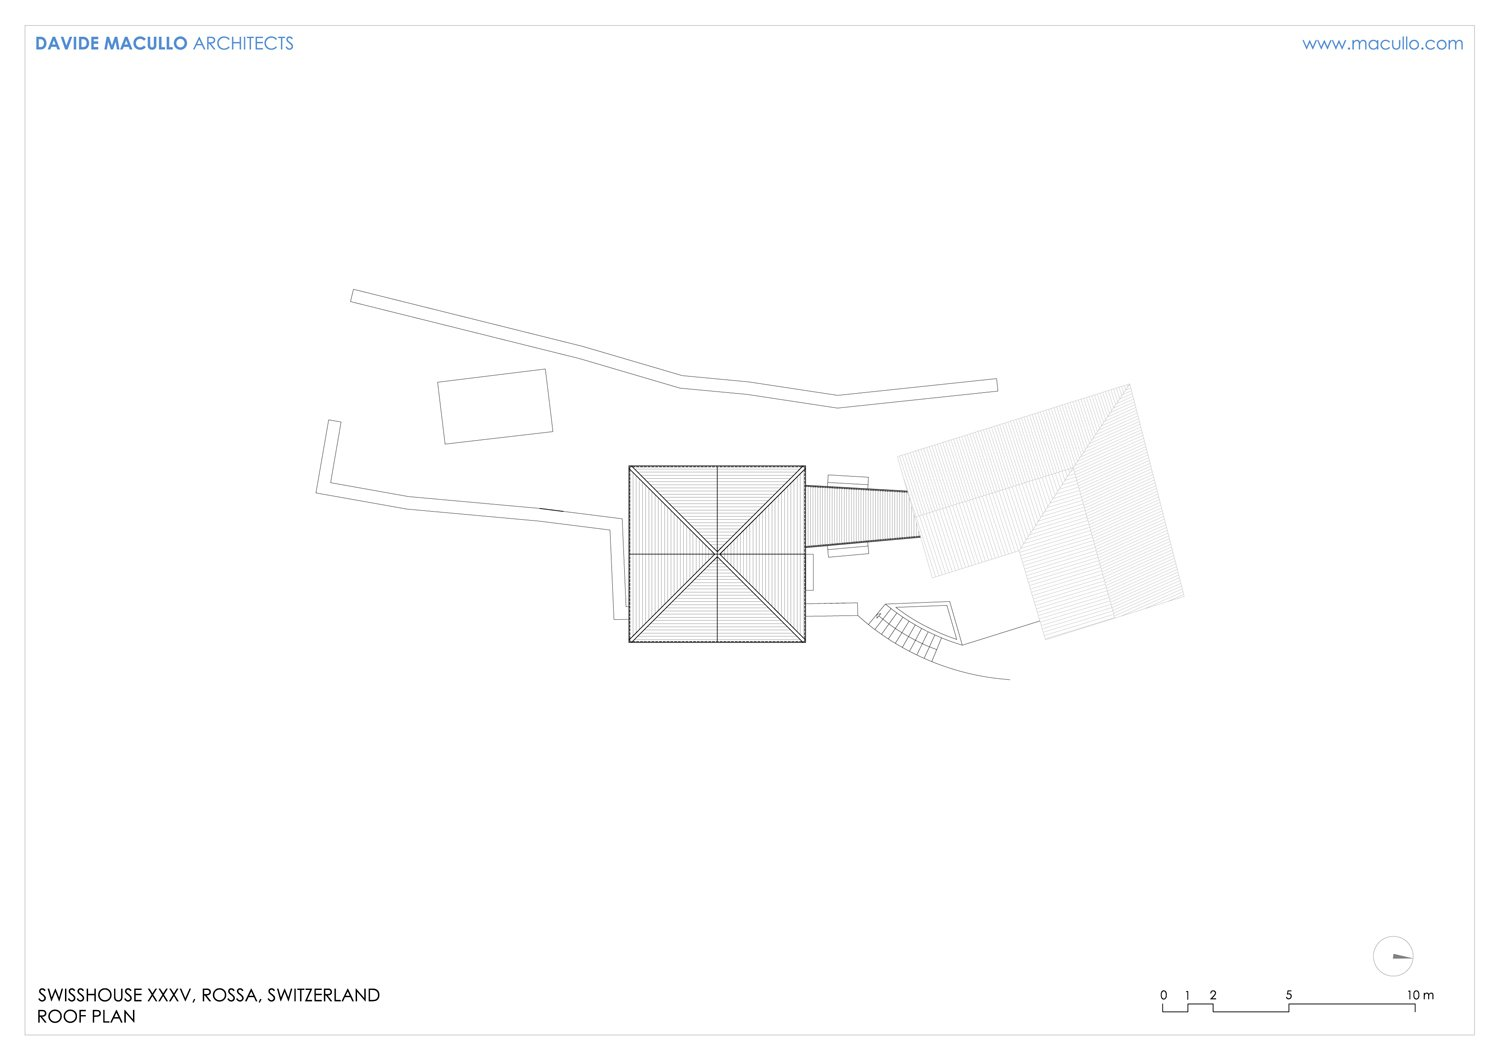 Roof plan Davide Macullo Arhcitects}